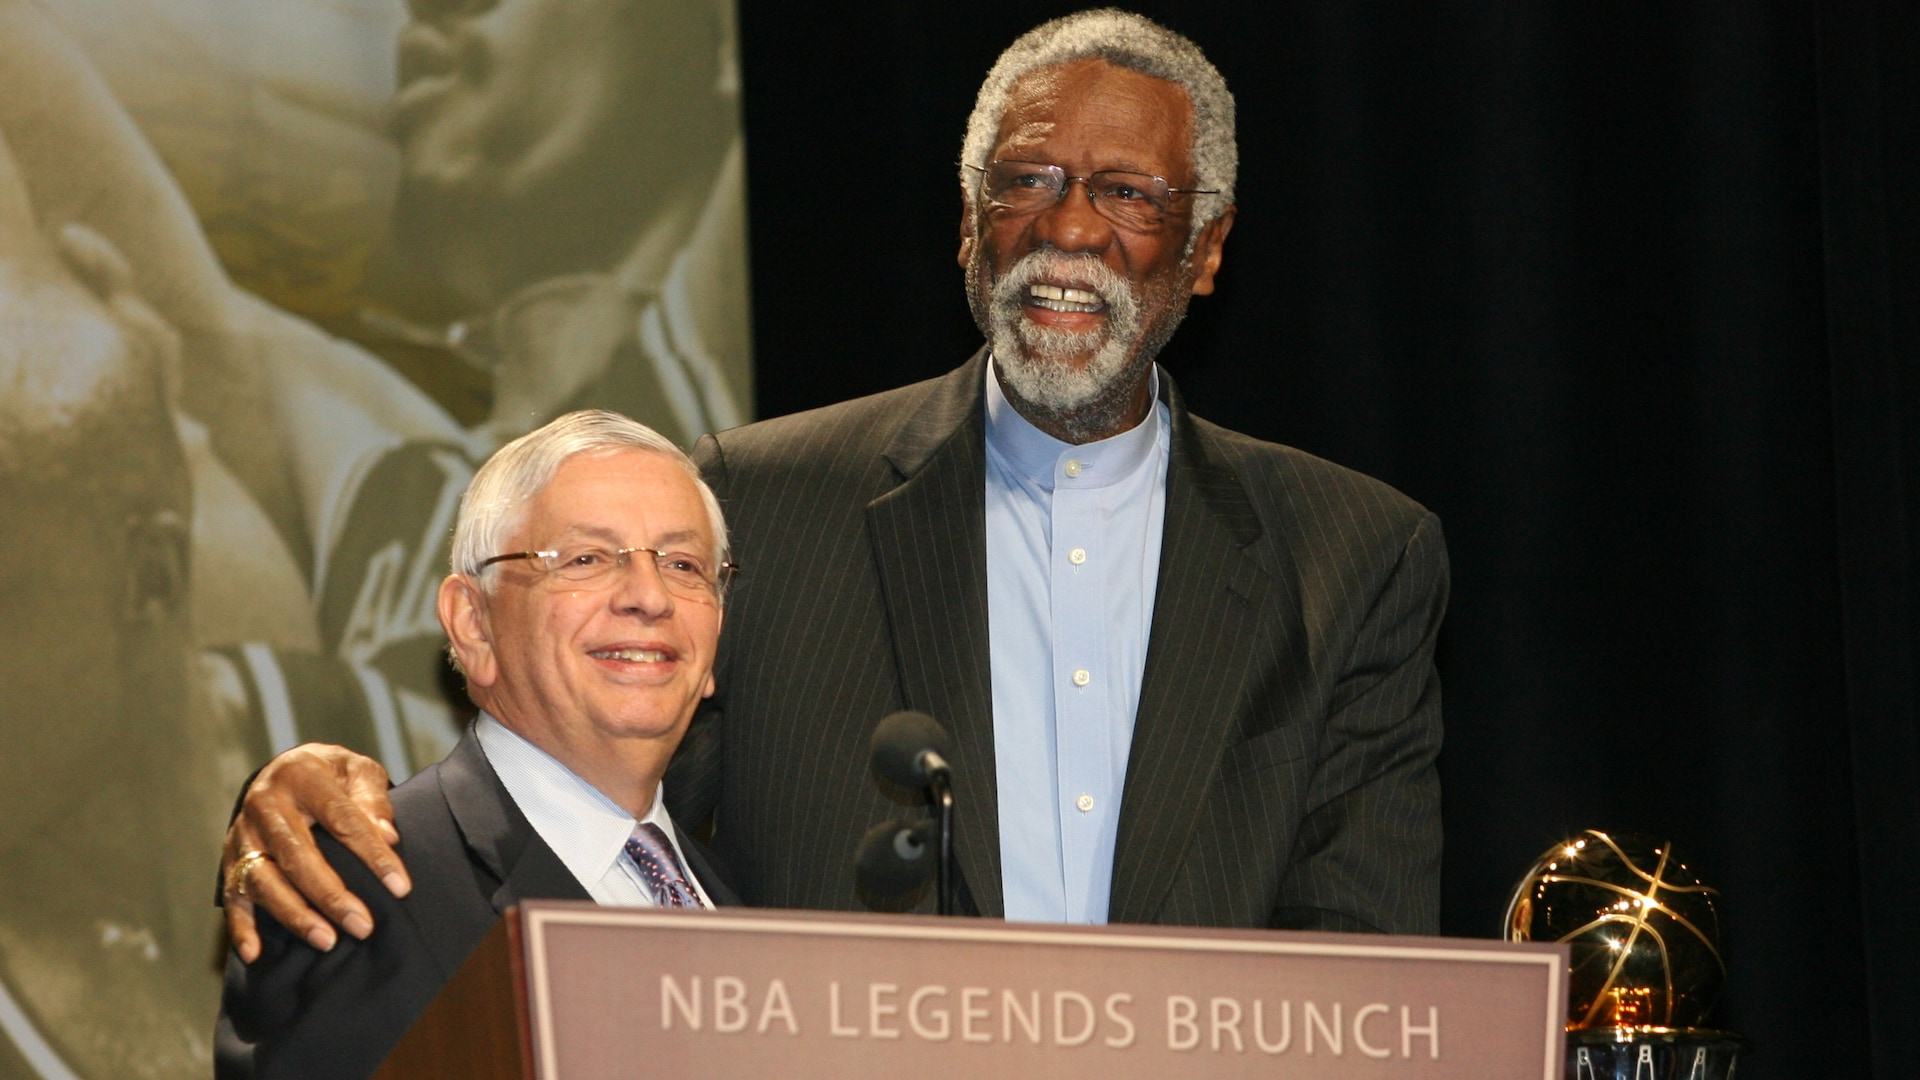 Twitter reacts: David Stern's passing